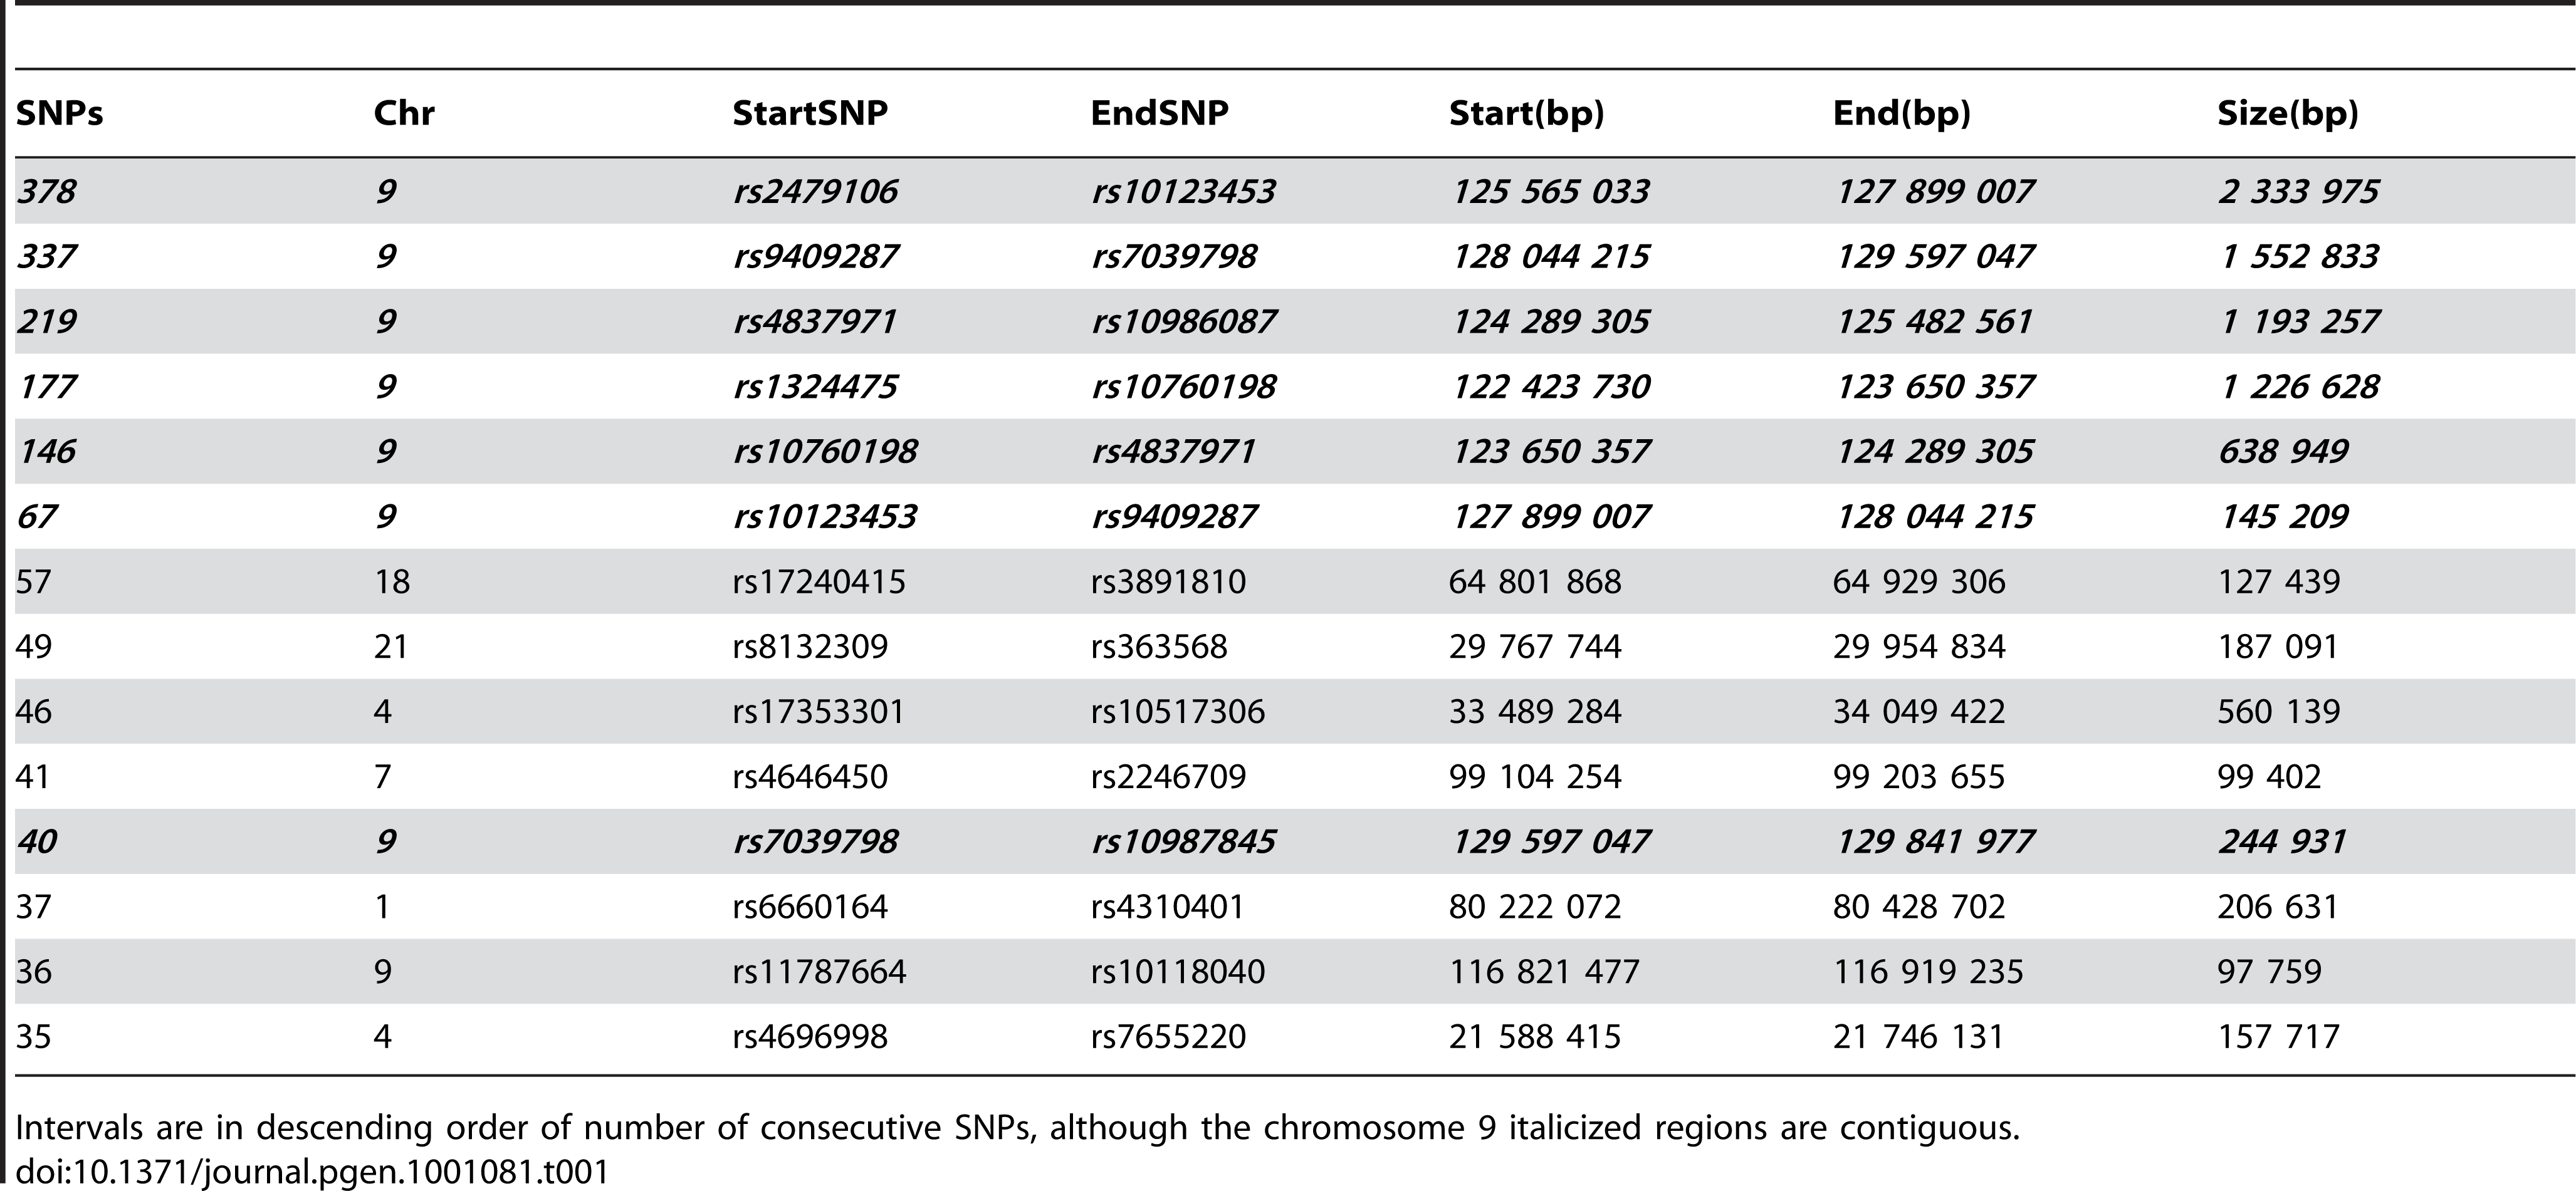 All intervals of 35 or more consecutive SNPs homozygous and identical by state among the six affected CMT samples.